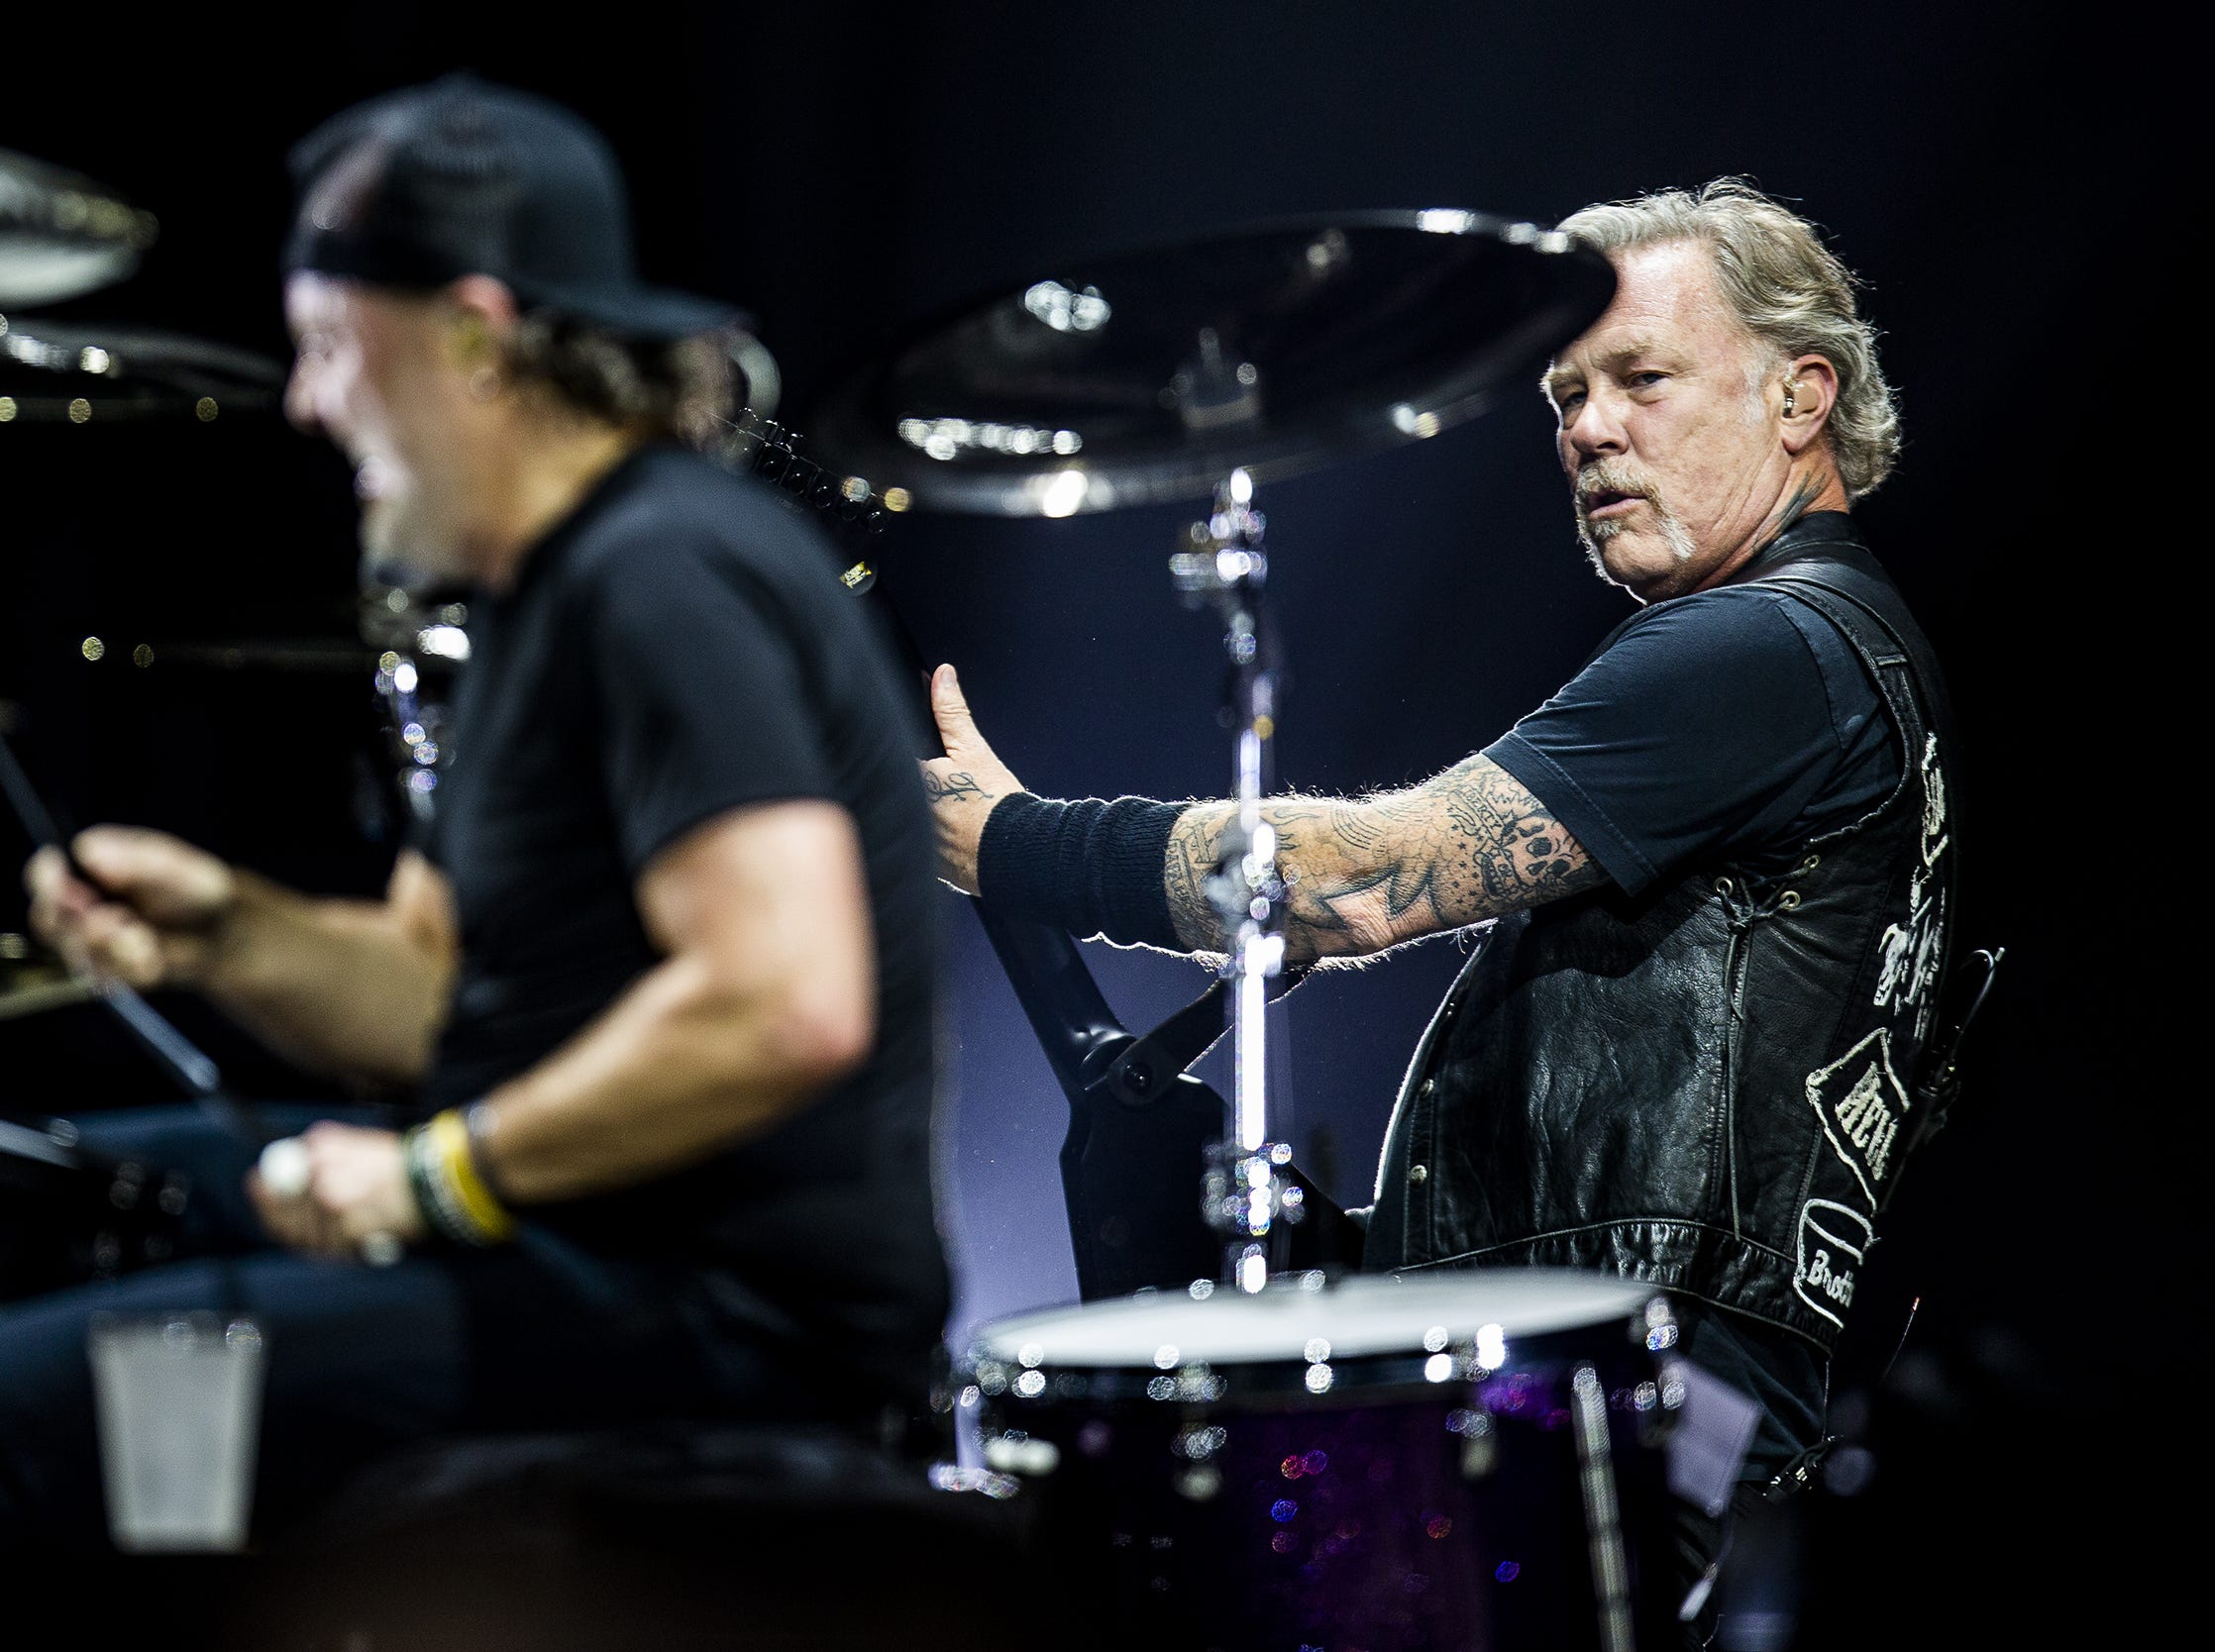 James Hetfield looked over at Lars Ulrich as they performed at the KFC Yum Center in downtown Louisville, Ky. on Saturday, March 9, 2019.